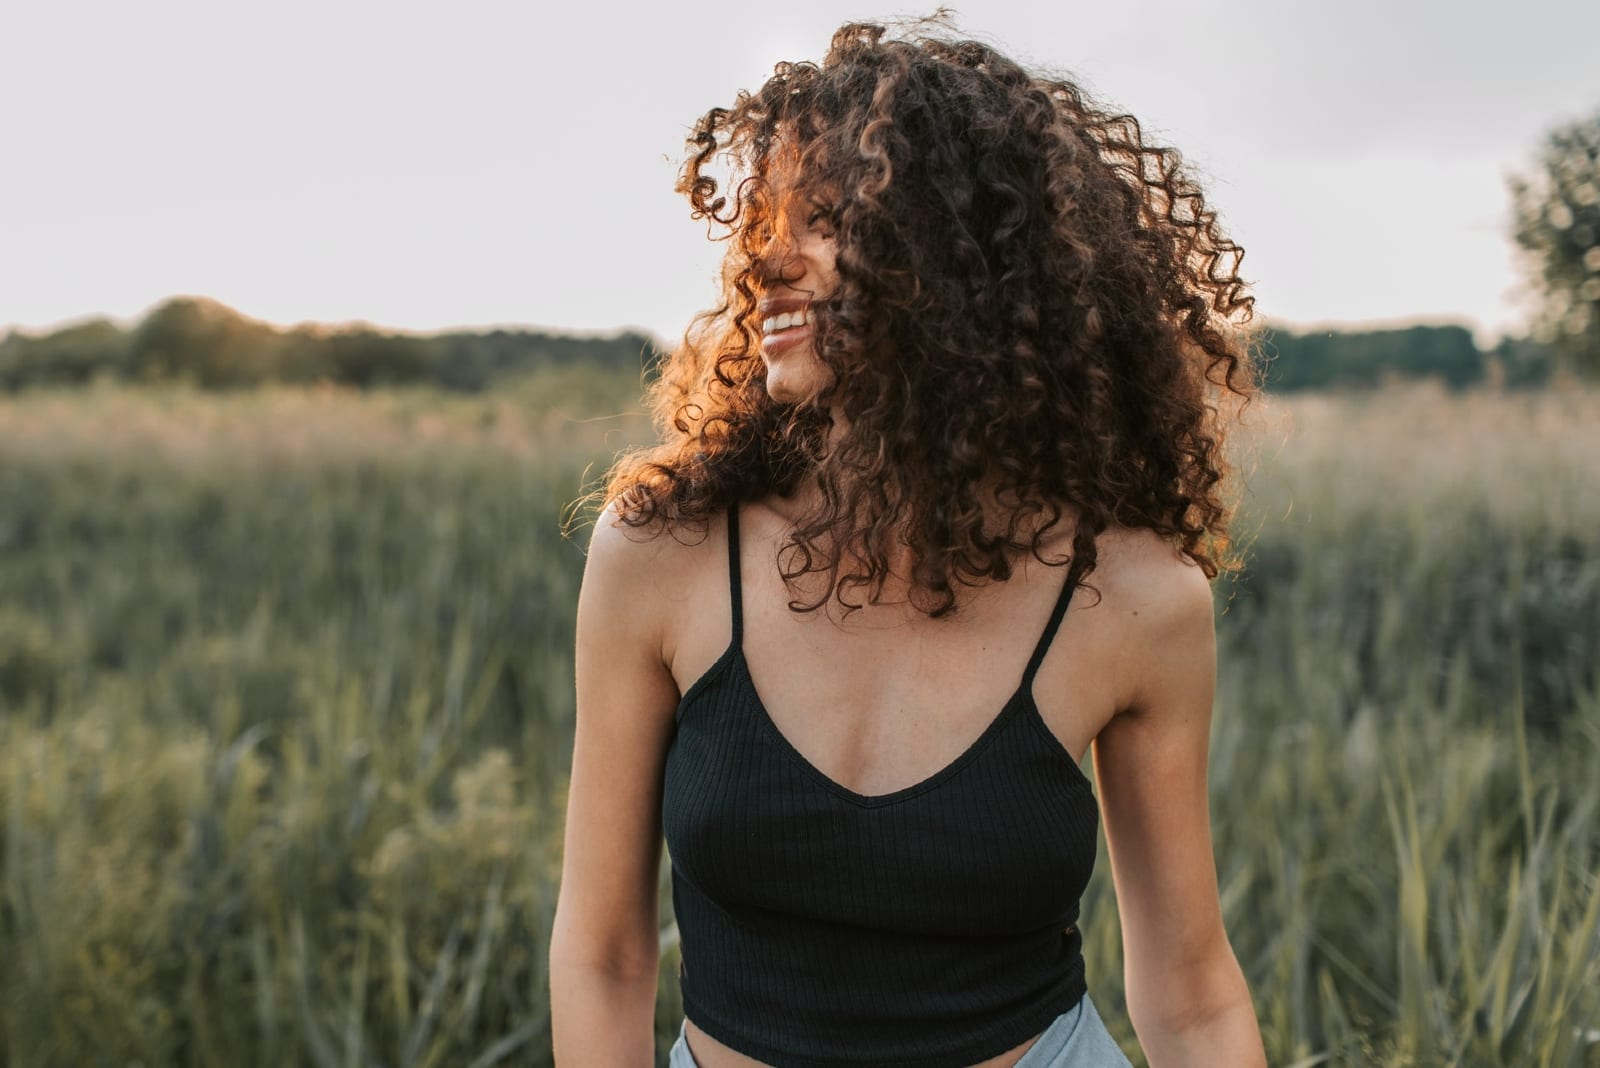 woman with curly hair standing in the field smiling